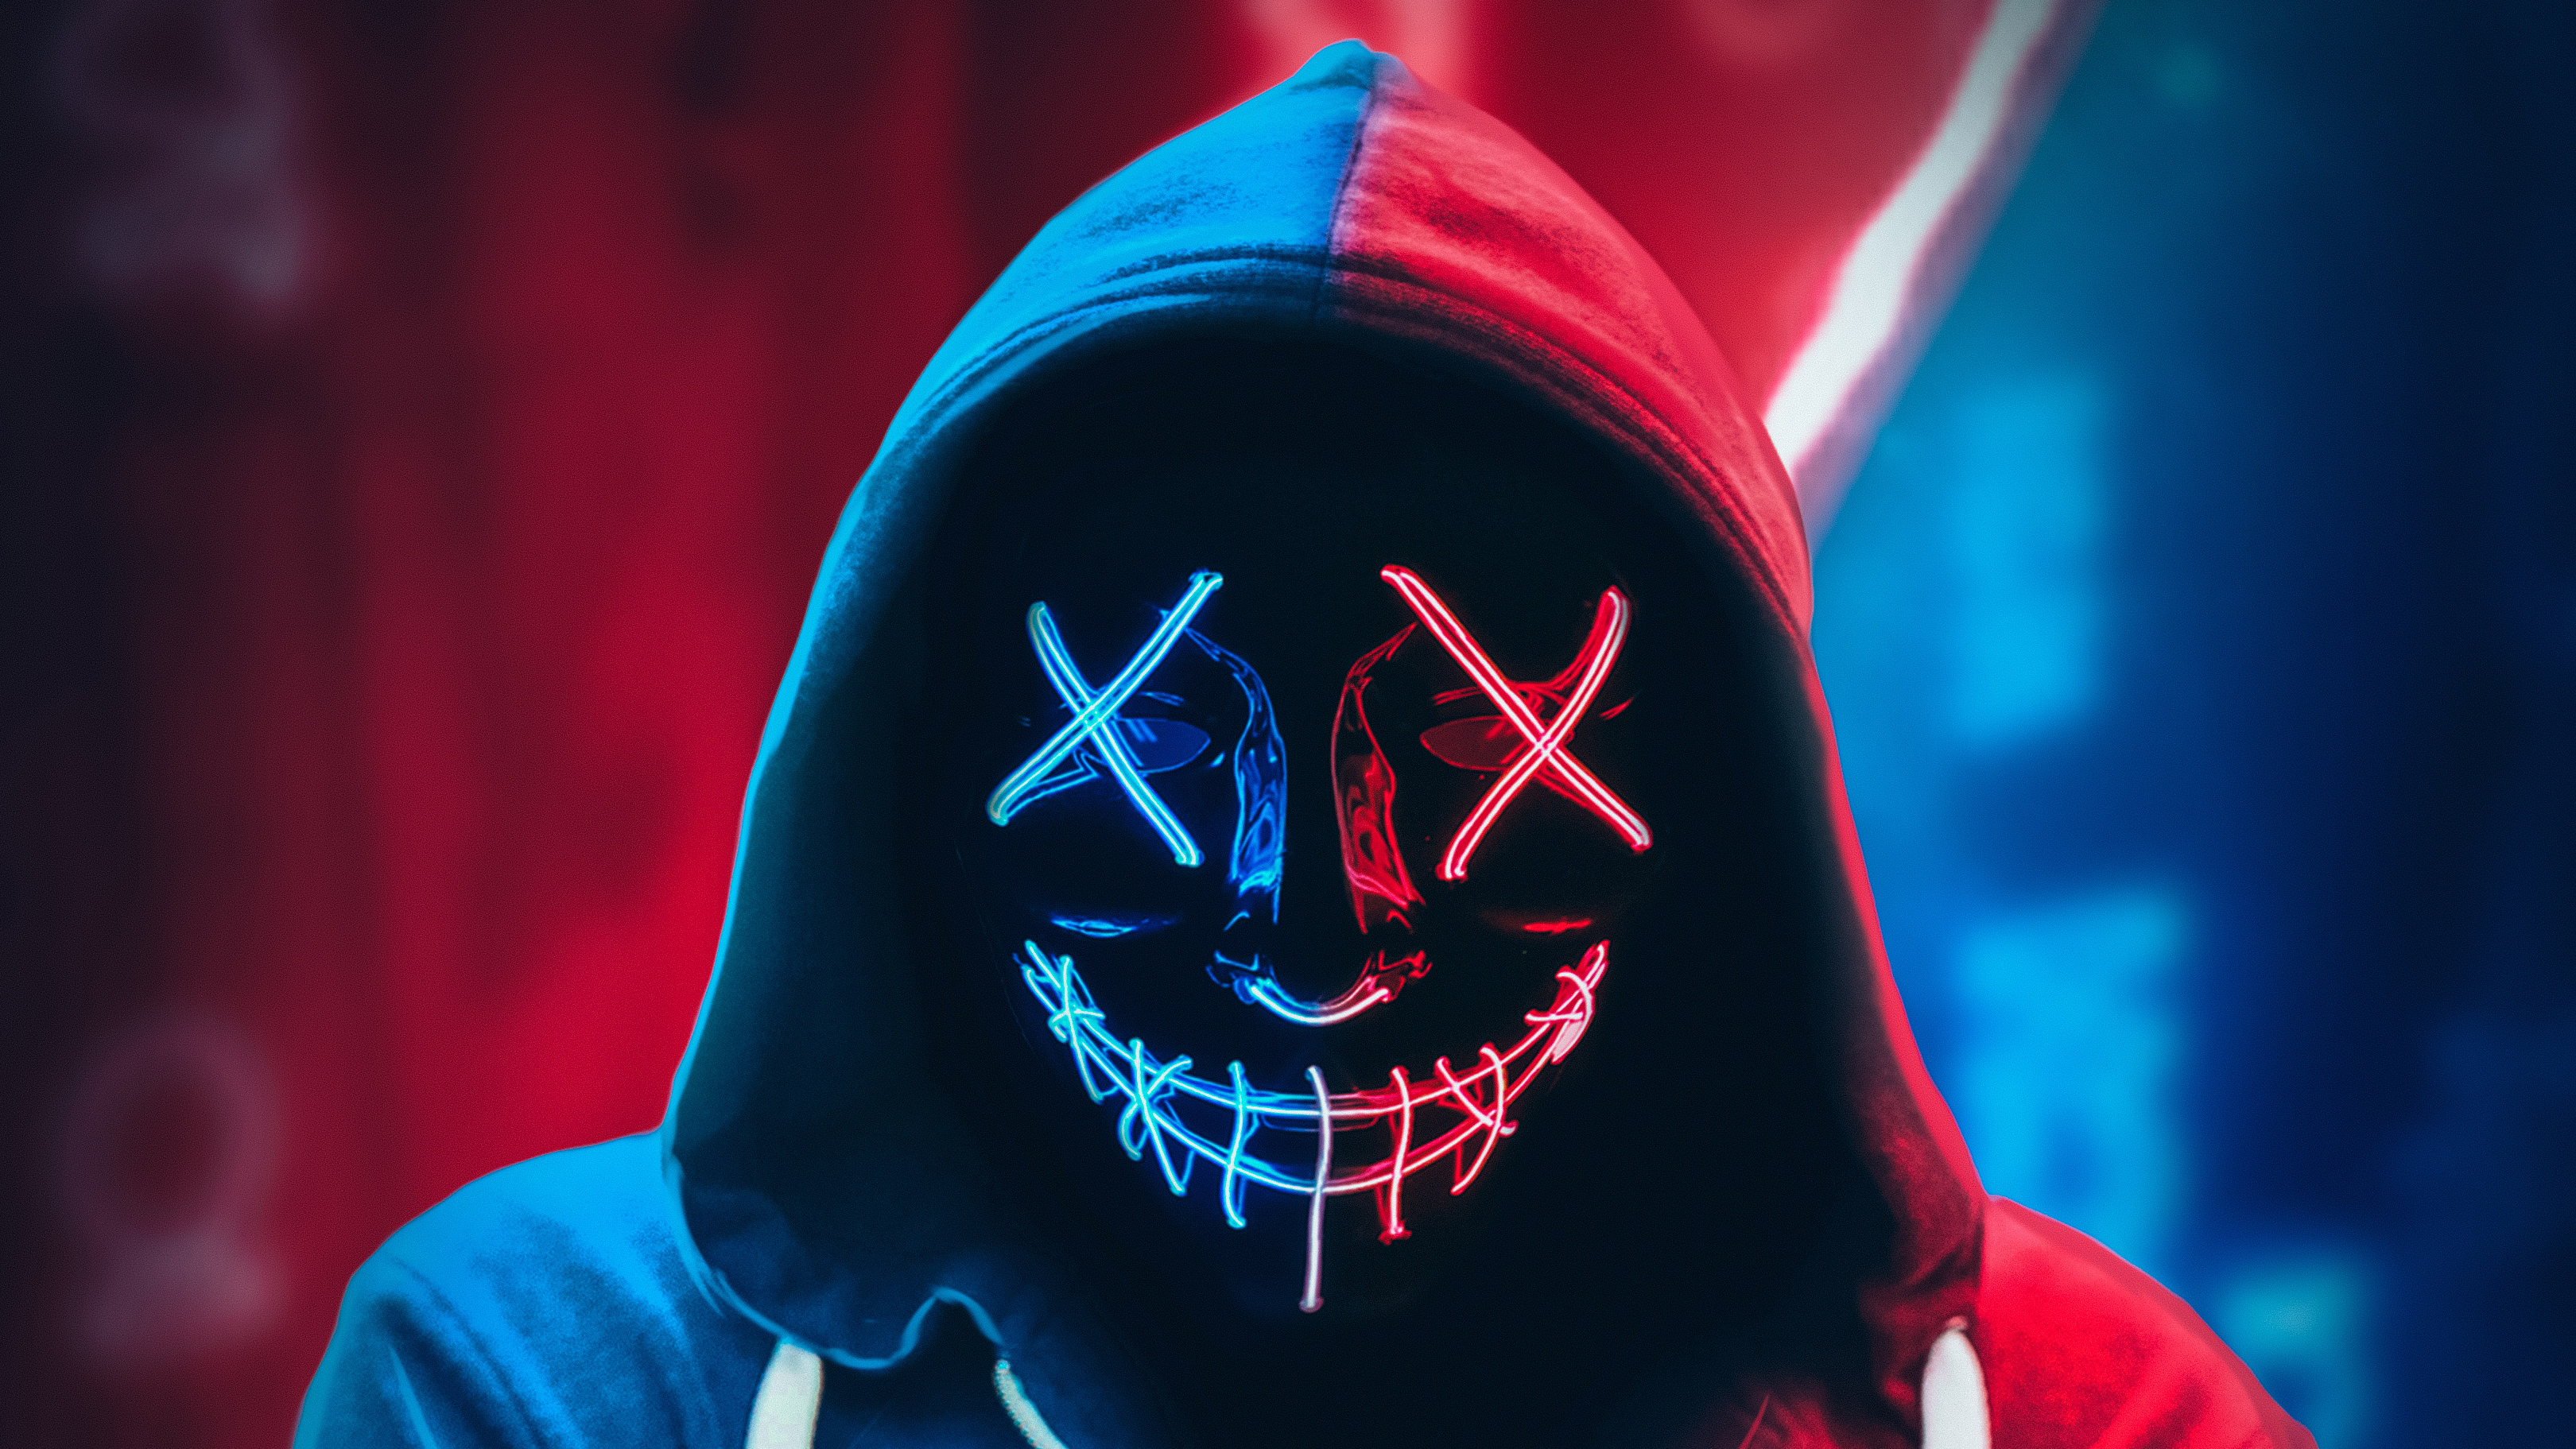 Neon Mask Hoodie 4k Hd Photography 4k Wallpapers Images Backgrounds Photos And Pictures